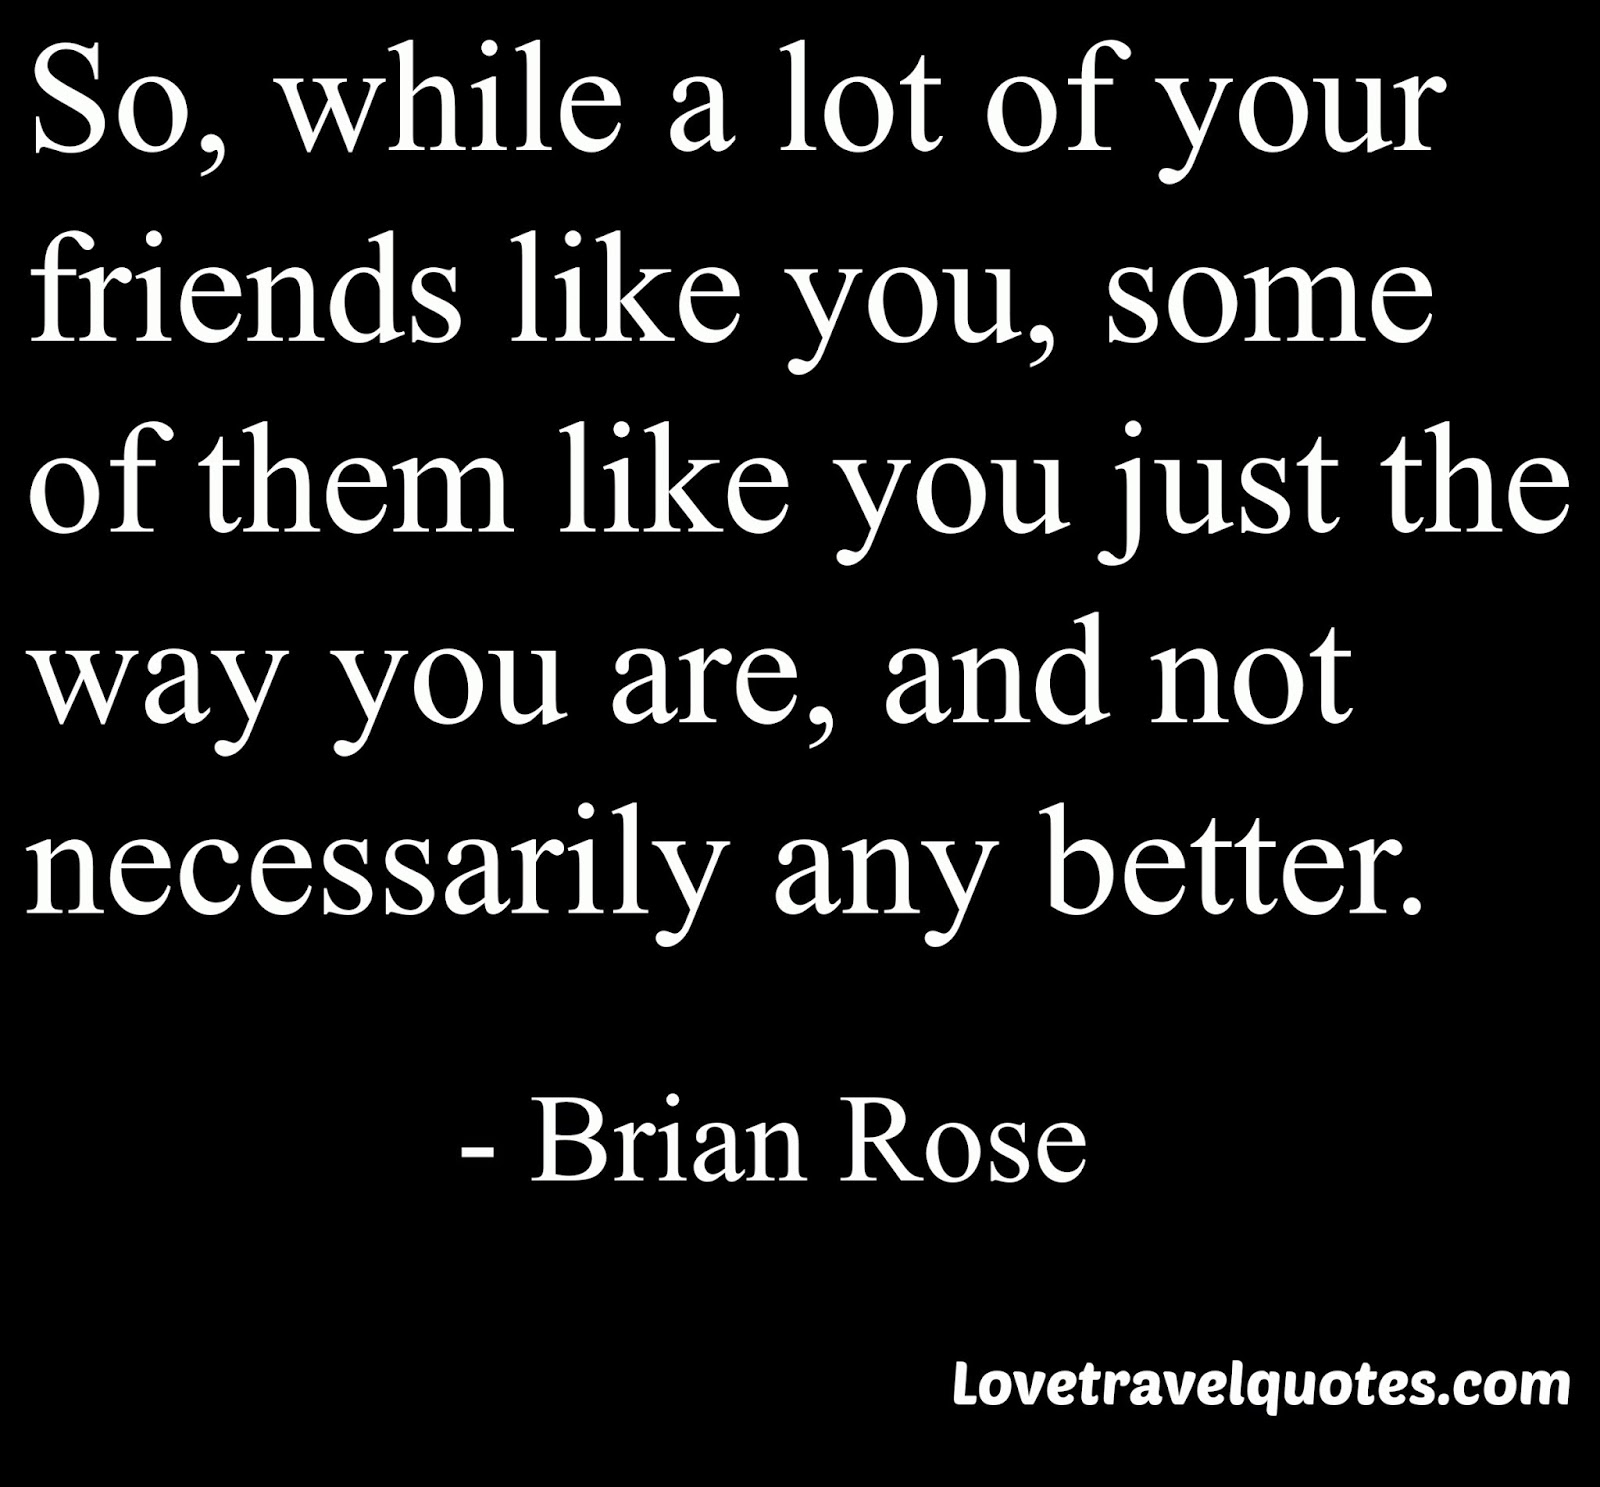 so, while a lot of your friends like you, some of them like you just the way you are, and not necessarily any better